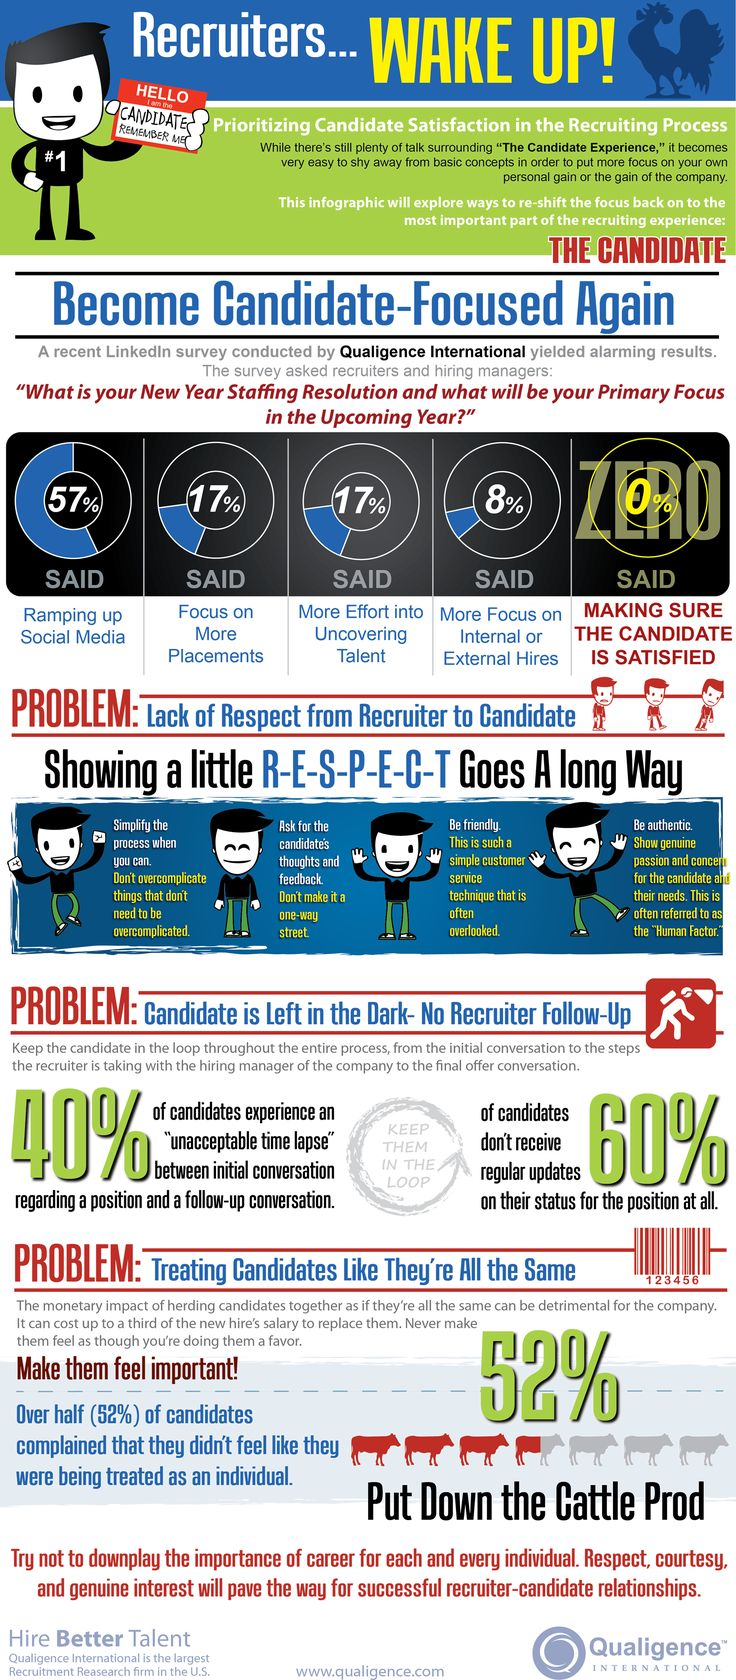 Top 7 Candidate-Focused Trends in #Recruiting to Watch in 2013 | Jobscience